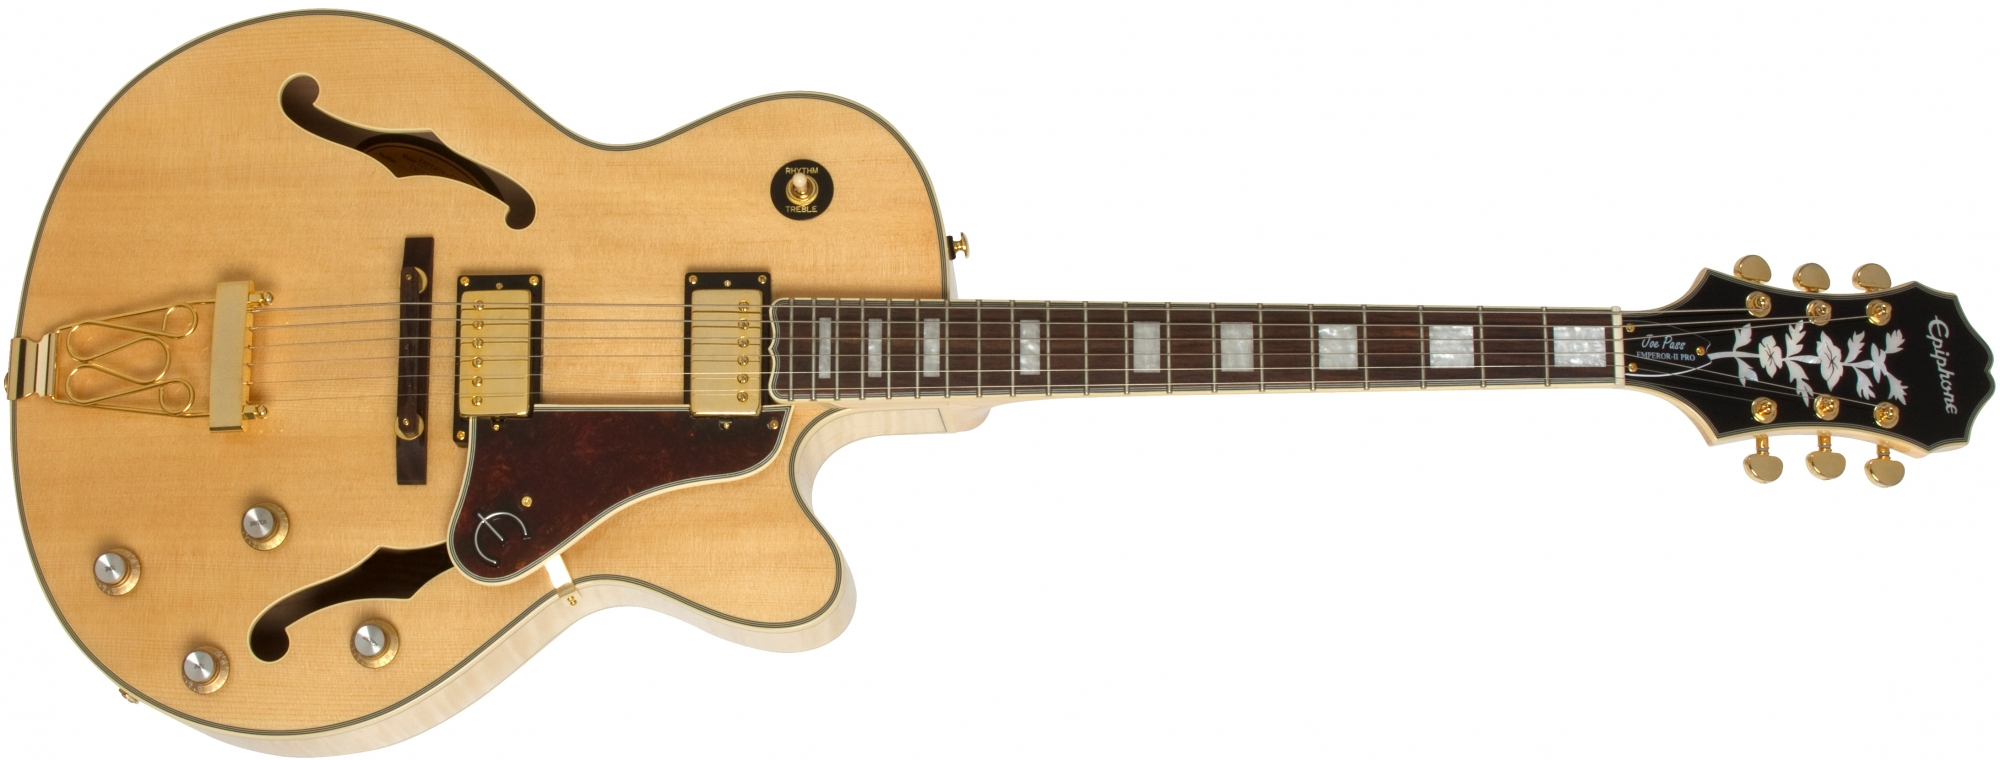 Epiphone Joe Pass Emperor-II PRO, Natural